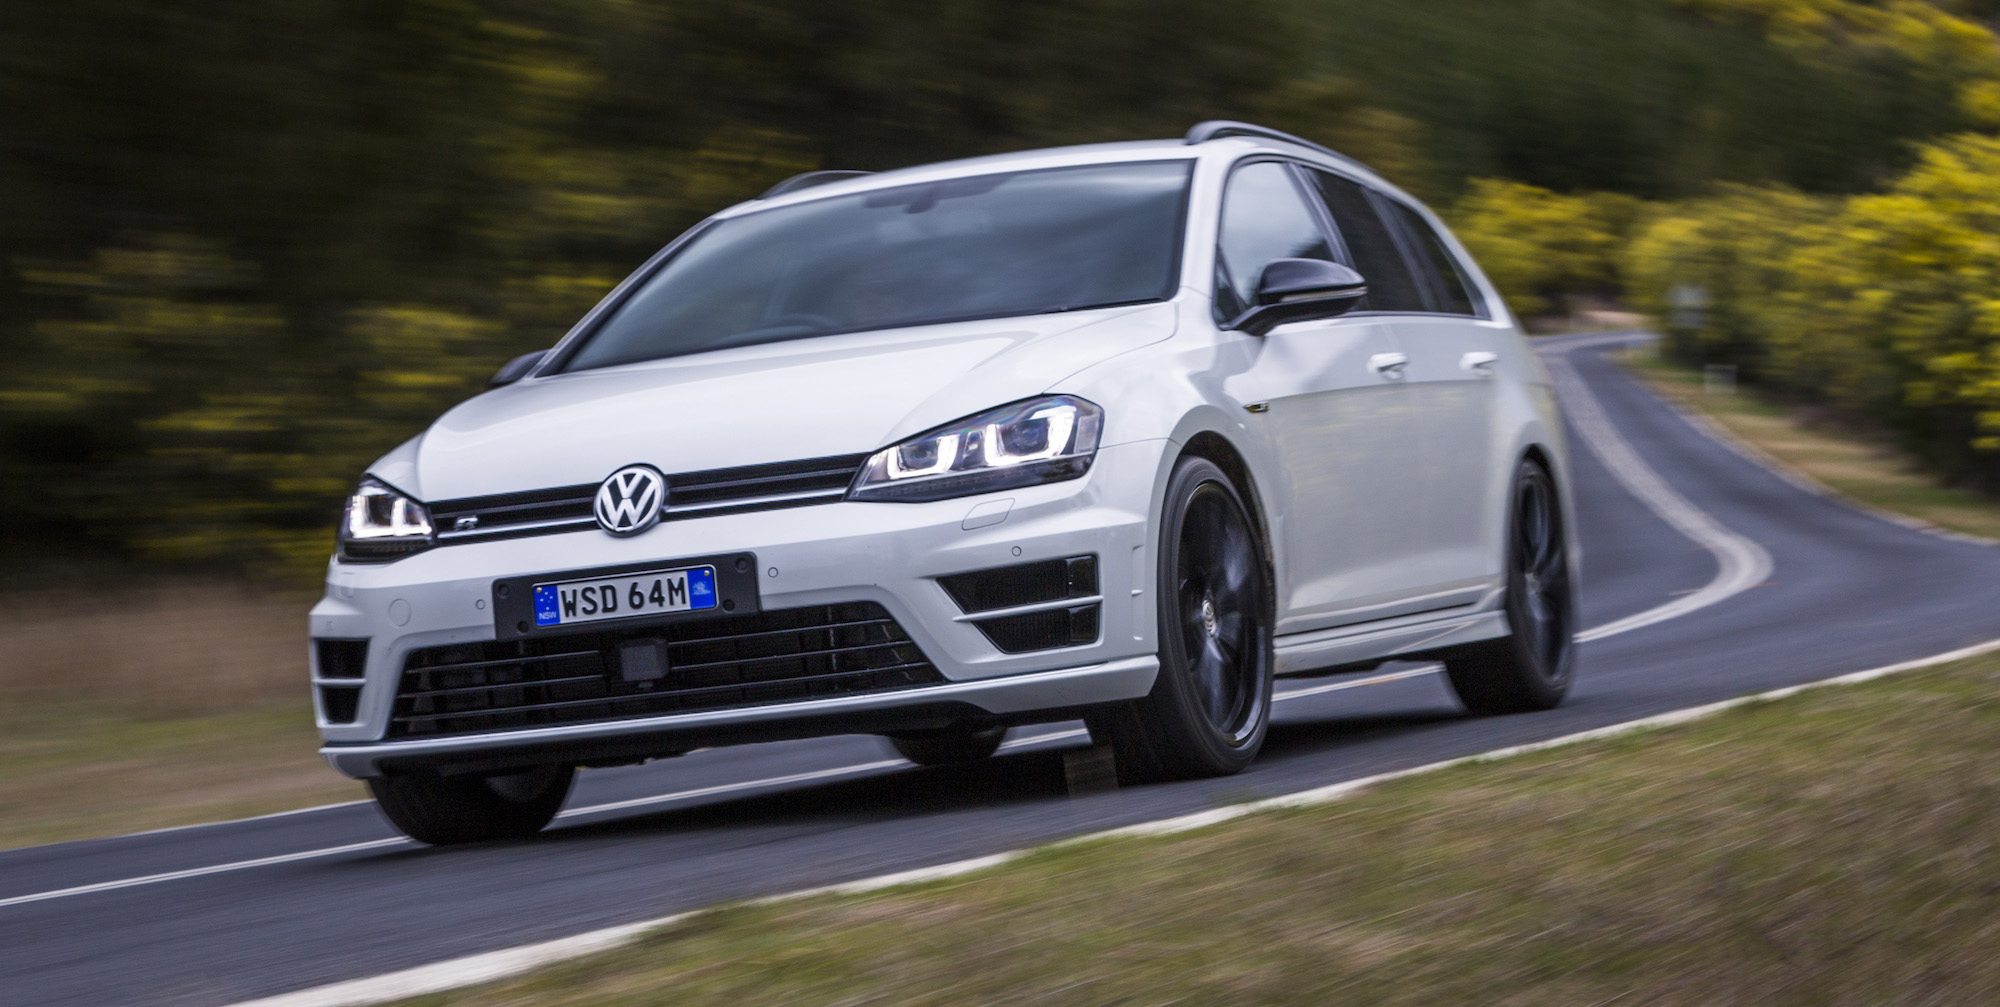 2019 Volkswagen Golf Speed photo - 4